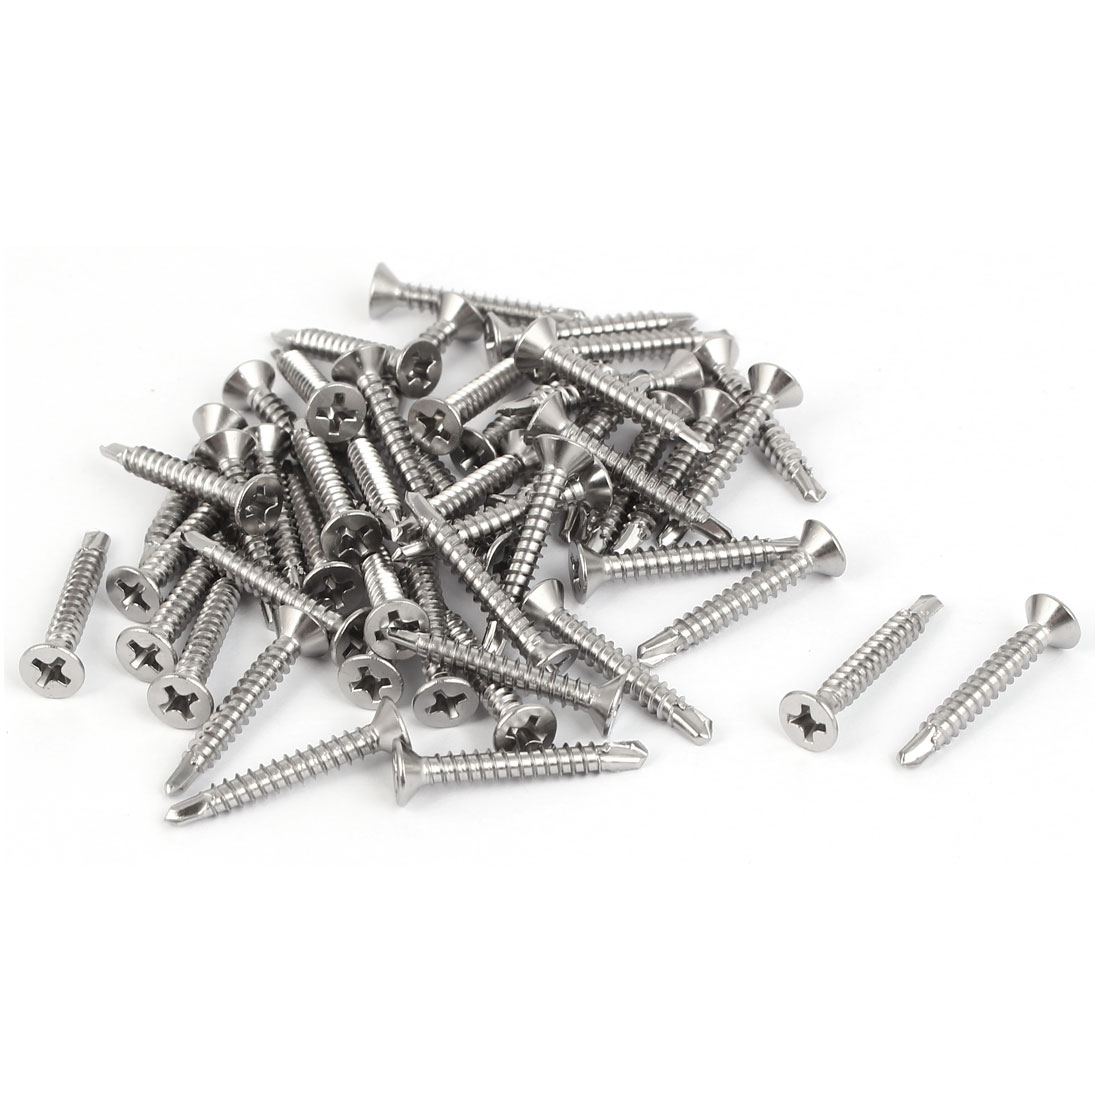 M3.5x25mm #6-20 Stainless Steel Self Drilling Flat Countersunk Head Screw 50 Pcs